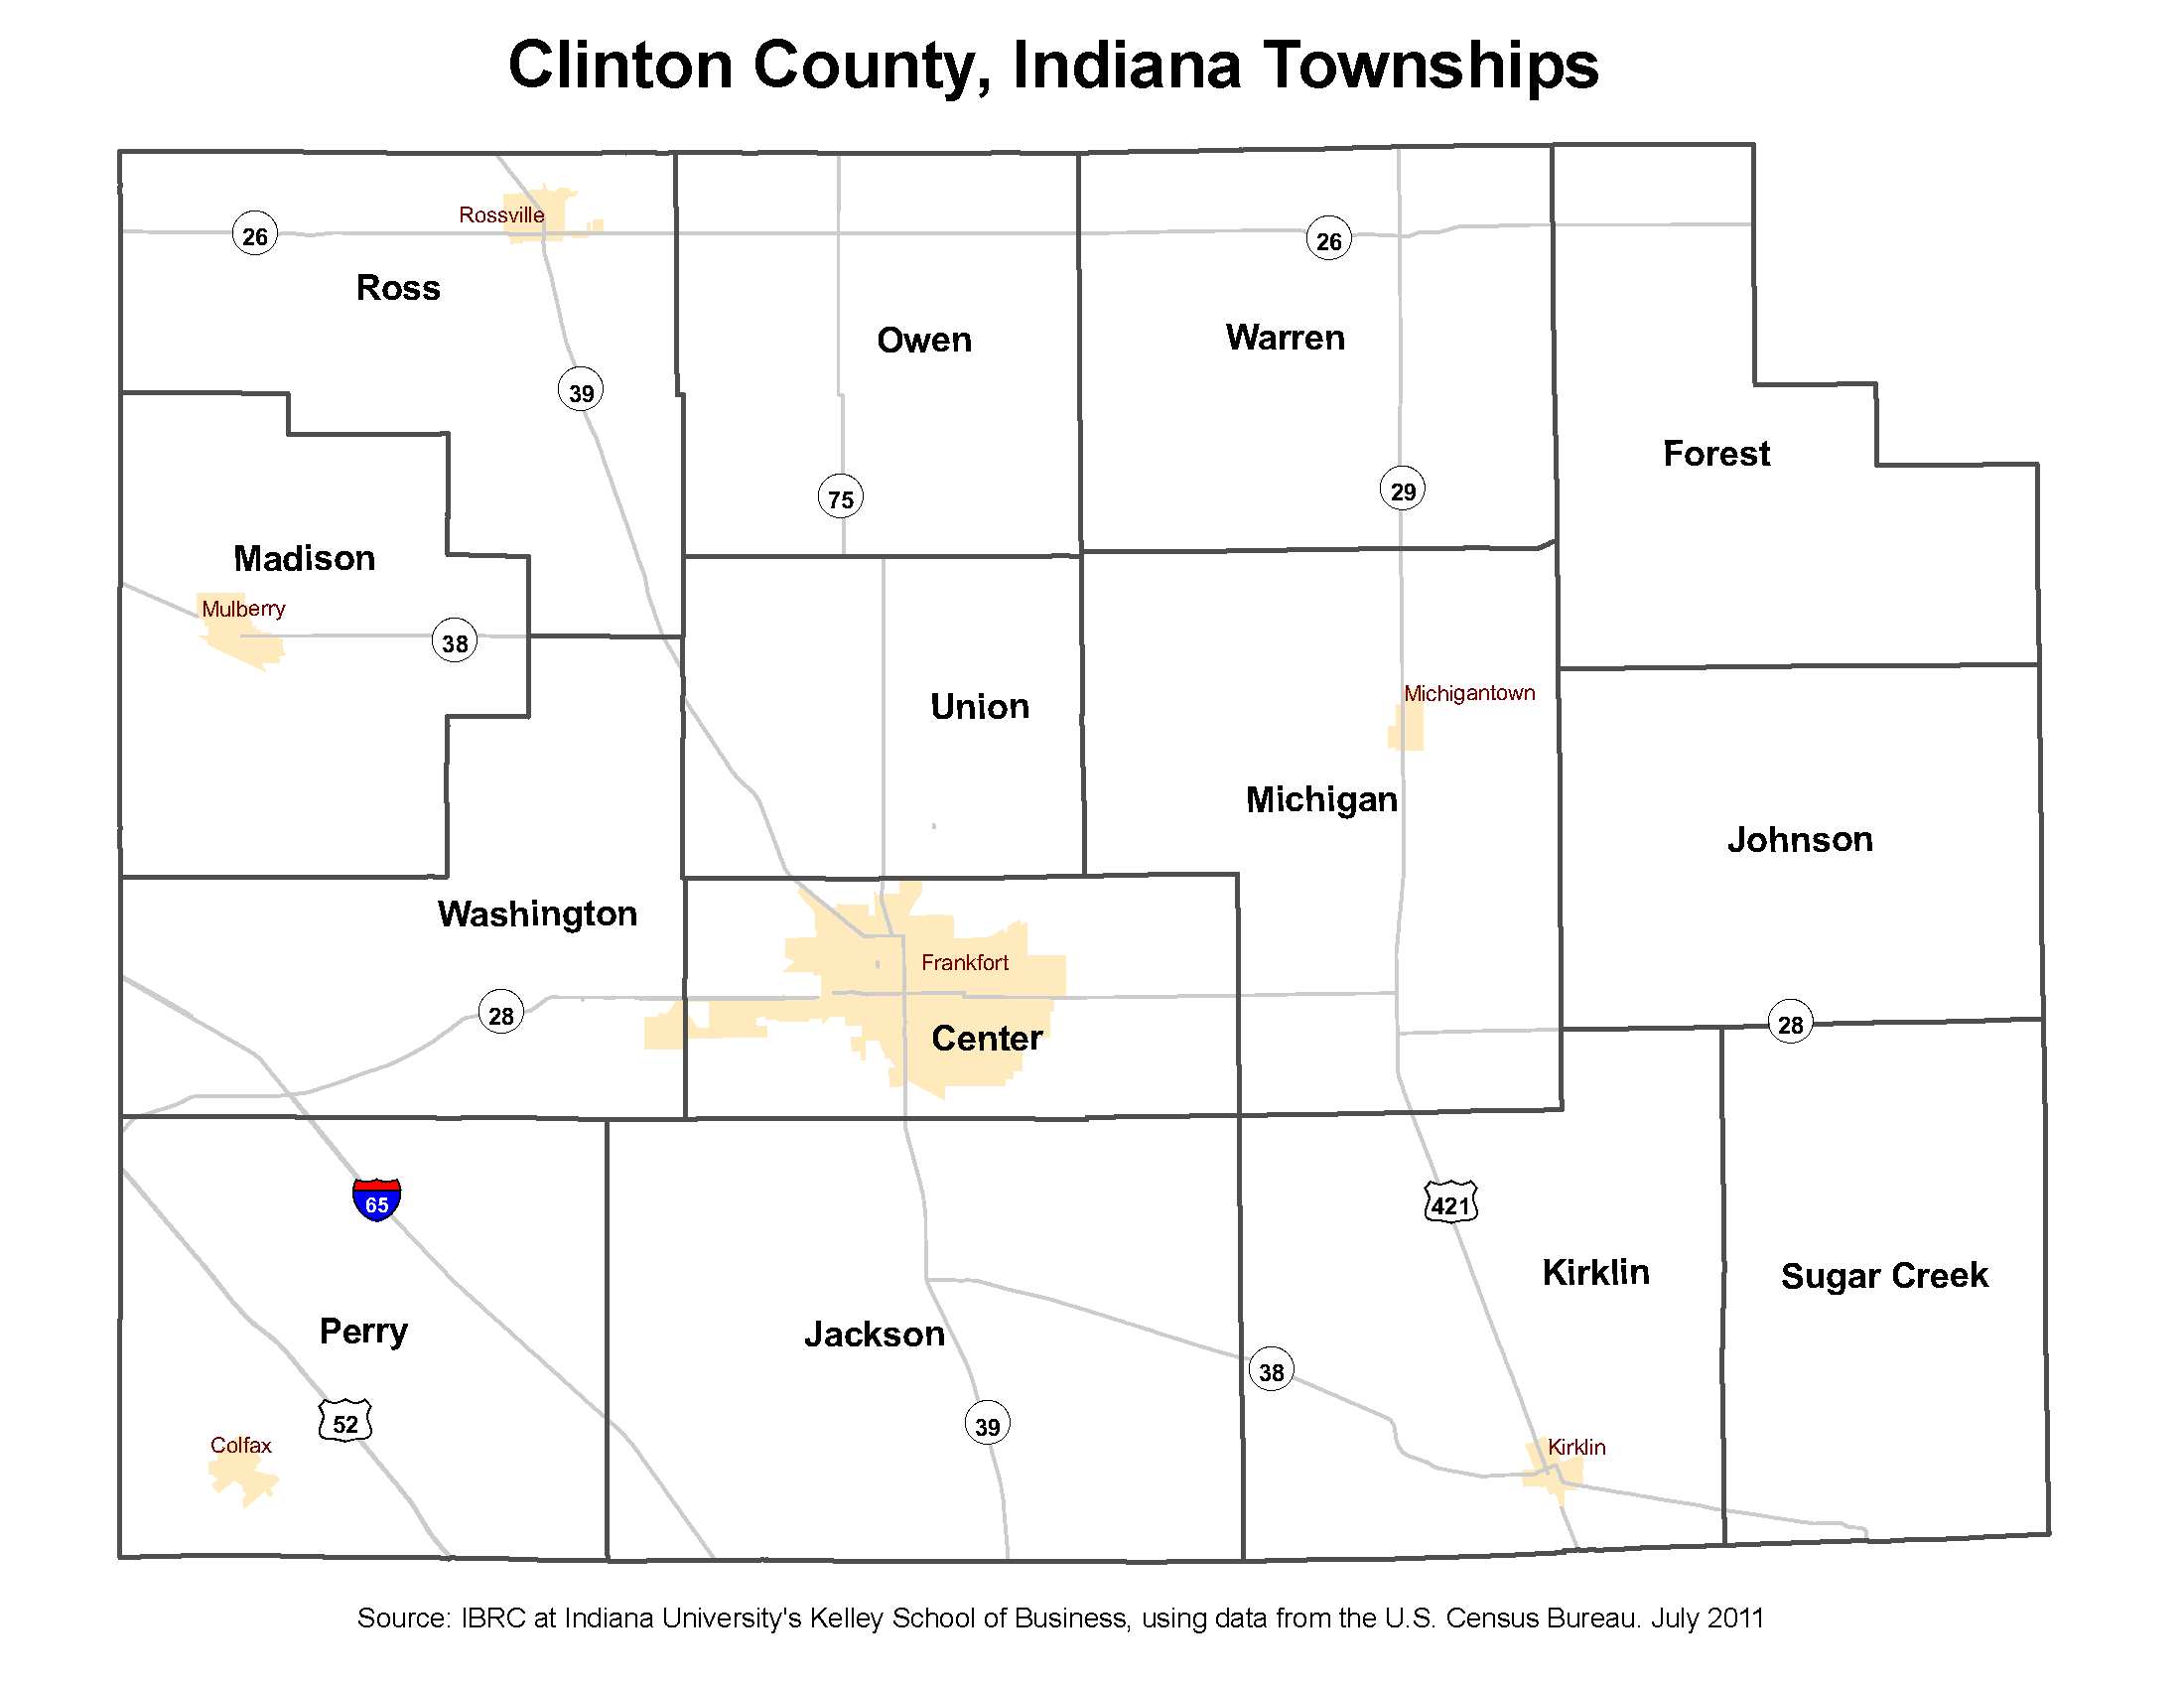 Township Maps: STATS Indiana on wyoming map showing counties, indiana county population growth, indianapolis area map counties, indiana map with latitude and longitude, indiana map with marion, indiana county map online, indiana map townships, indiana territory $1 800 map, indiana climate graph, indiana underground coal mine maps, indiana county map ohio, indiana counties names, indiana road map, indiana county map printable, indiana by county, indiana shipshewana map shopping, indiana counties by number, louisville map ky counties, indianapolis indiana counties, map showing indiana counties,